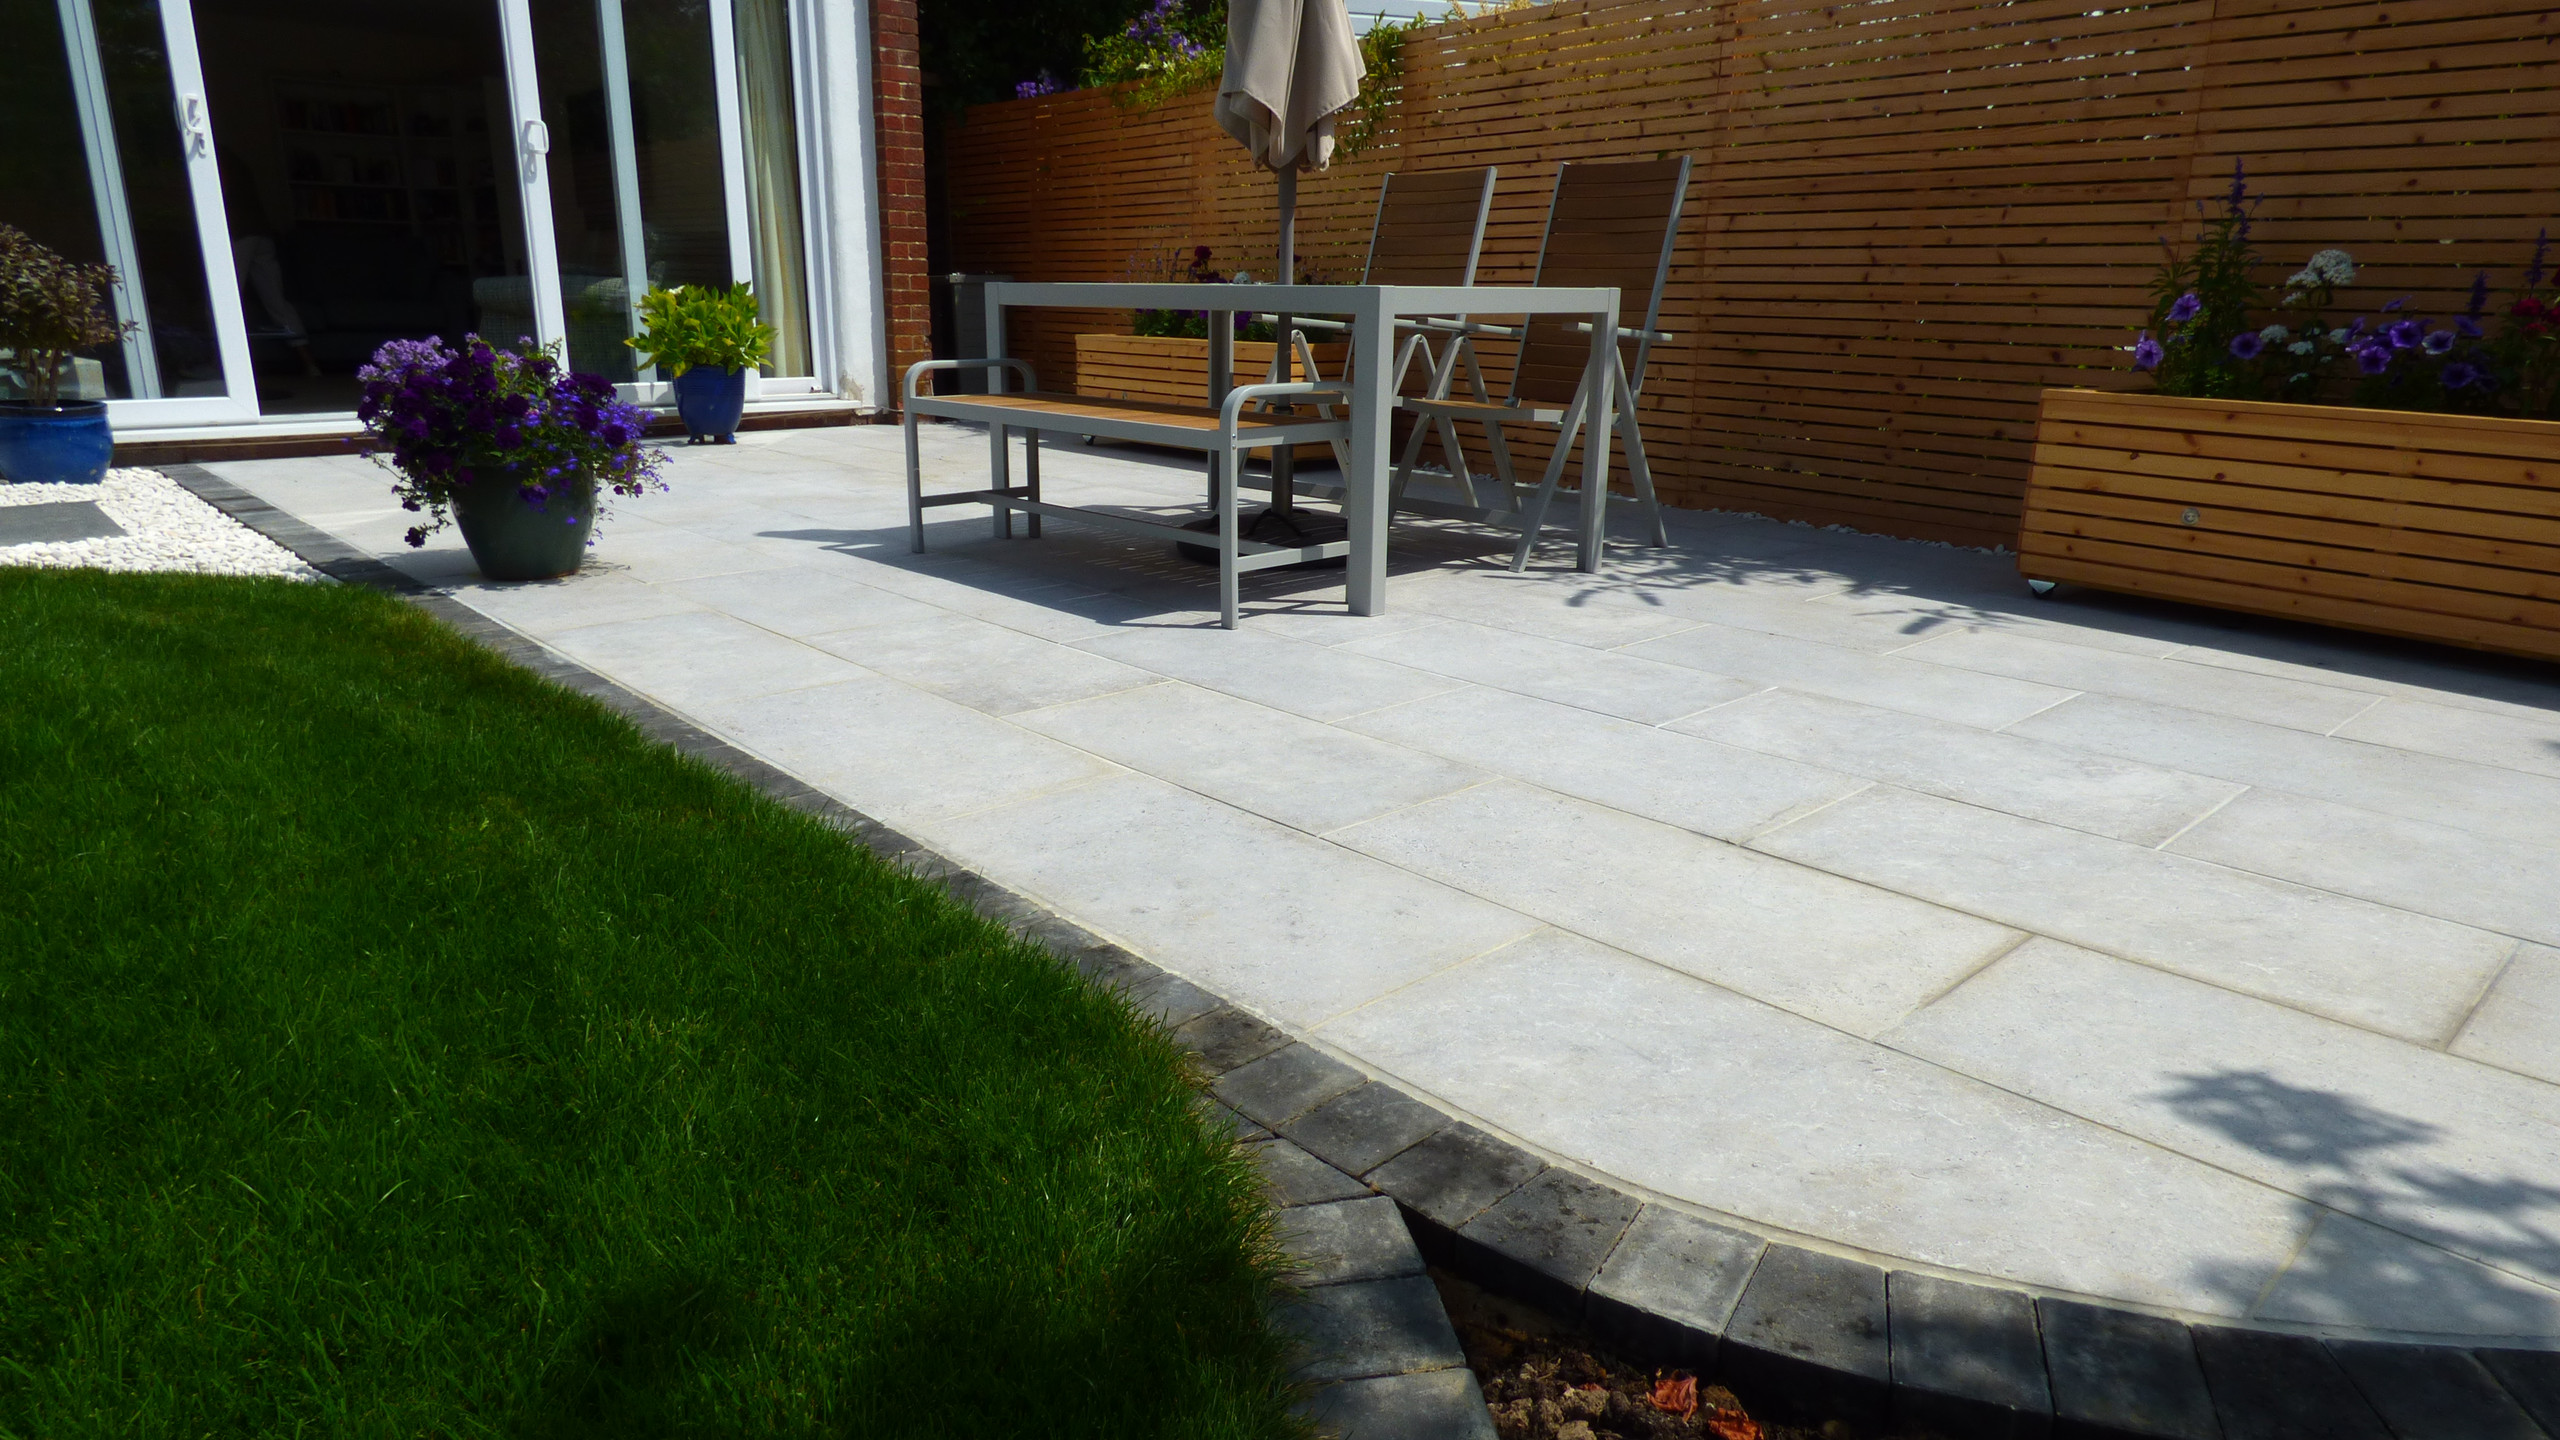 A CED Amabile porcelain patio featuring Rock Unique stepping stones, flat white pebbles and a circular lawn edged with Brett Beta Charcoal blocks.